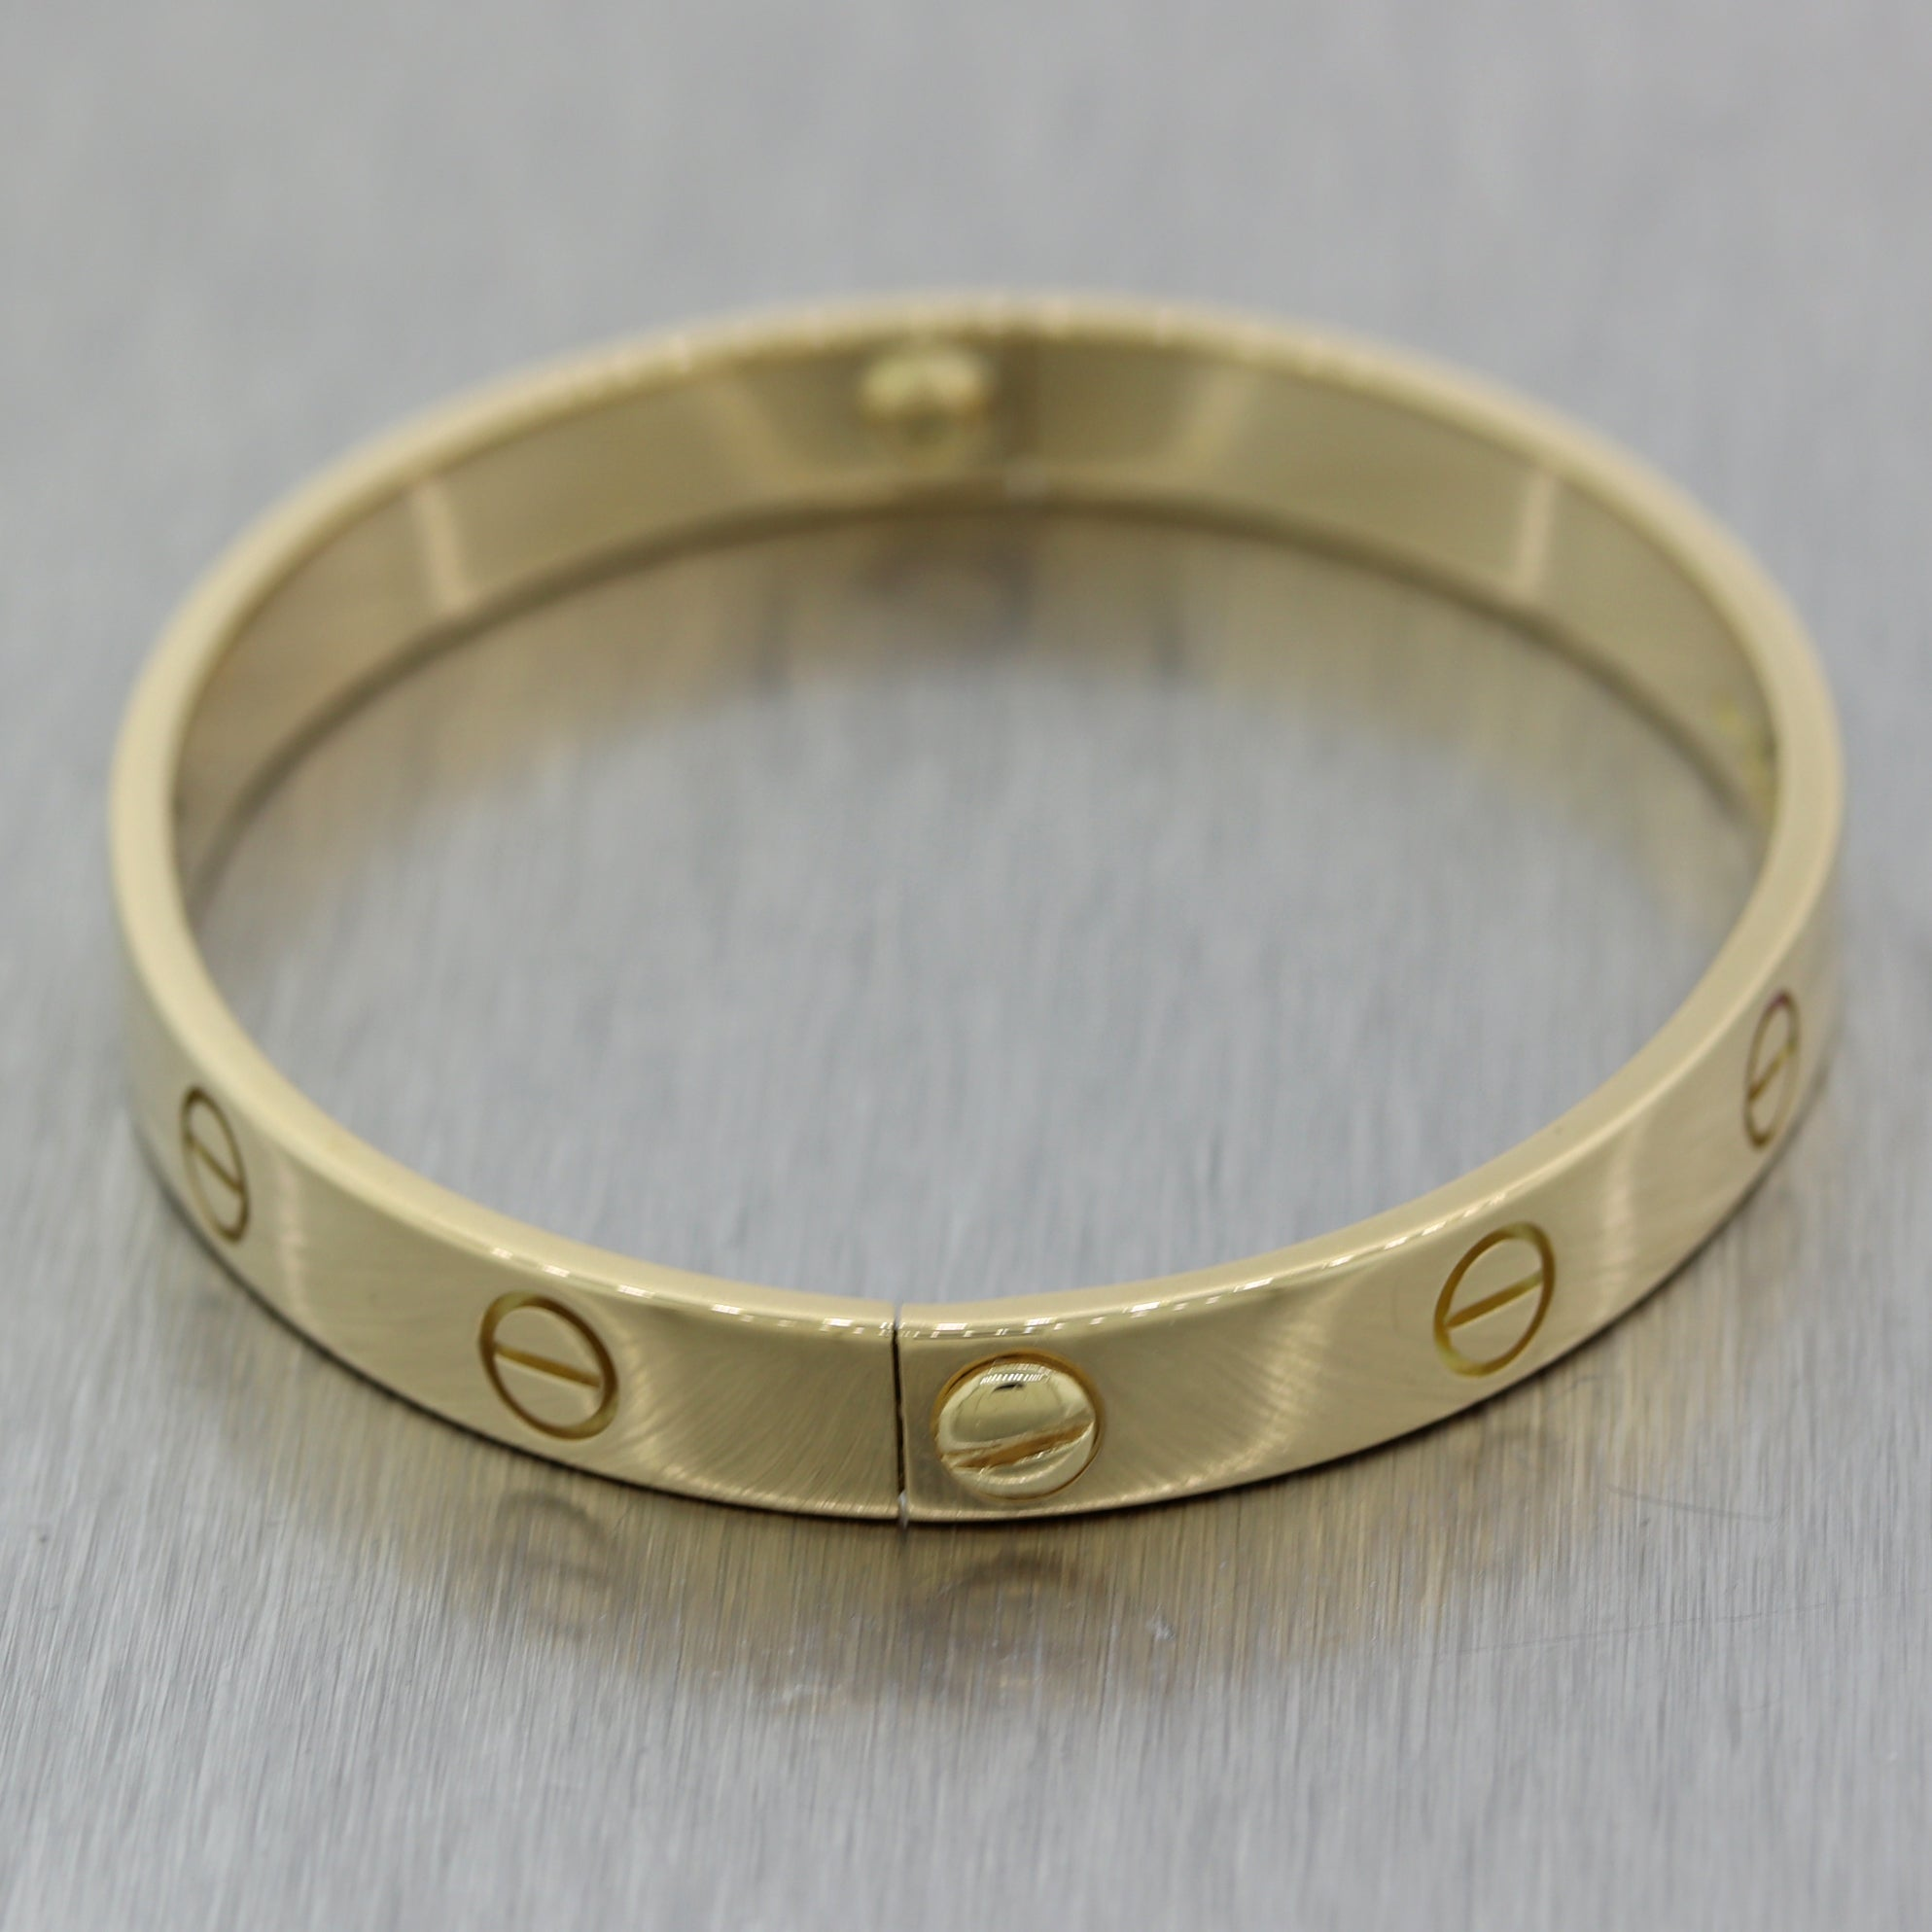 Cartier 18k Yellow Gold Old Style Screw Love Bangle Bracelet Box Size 17